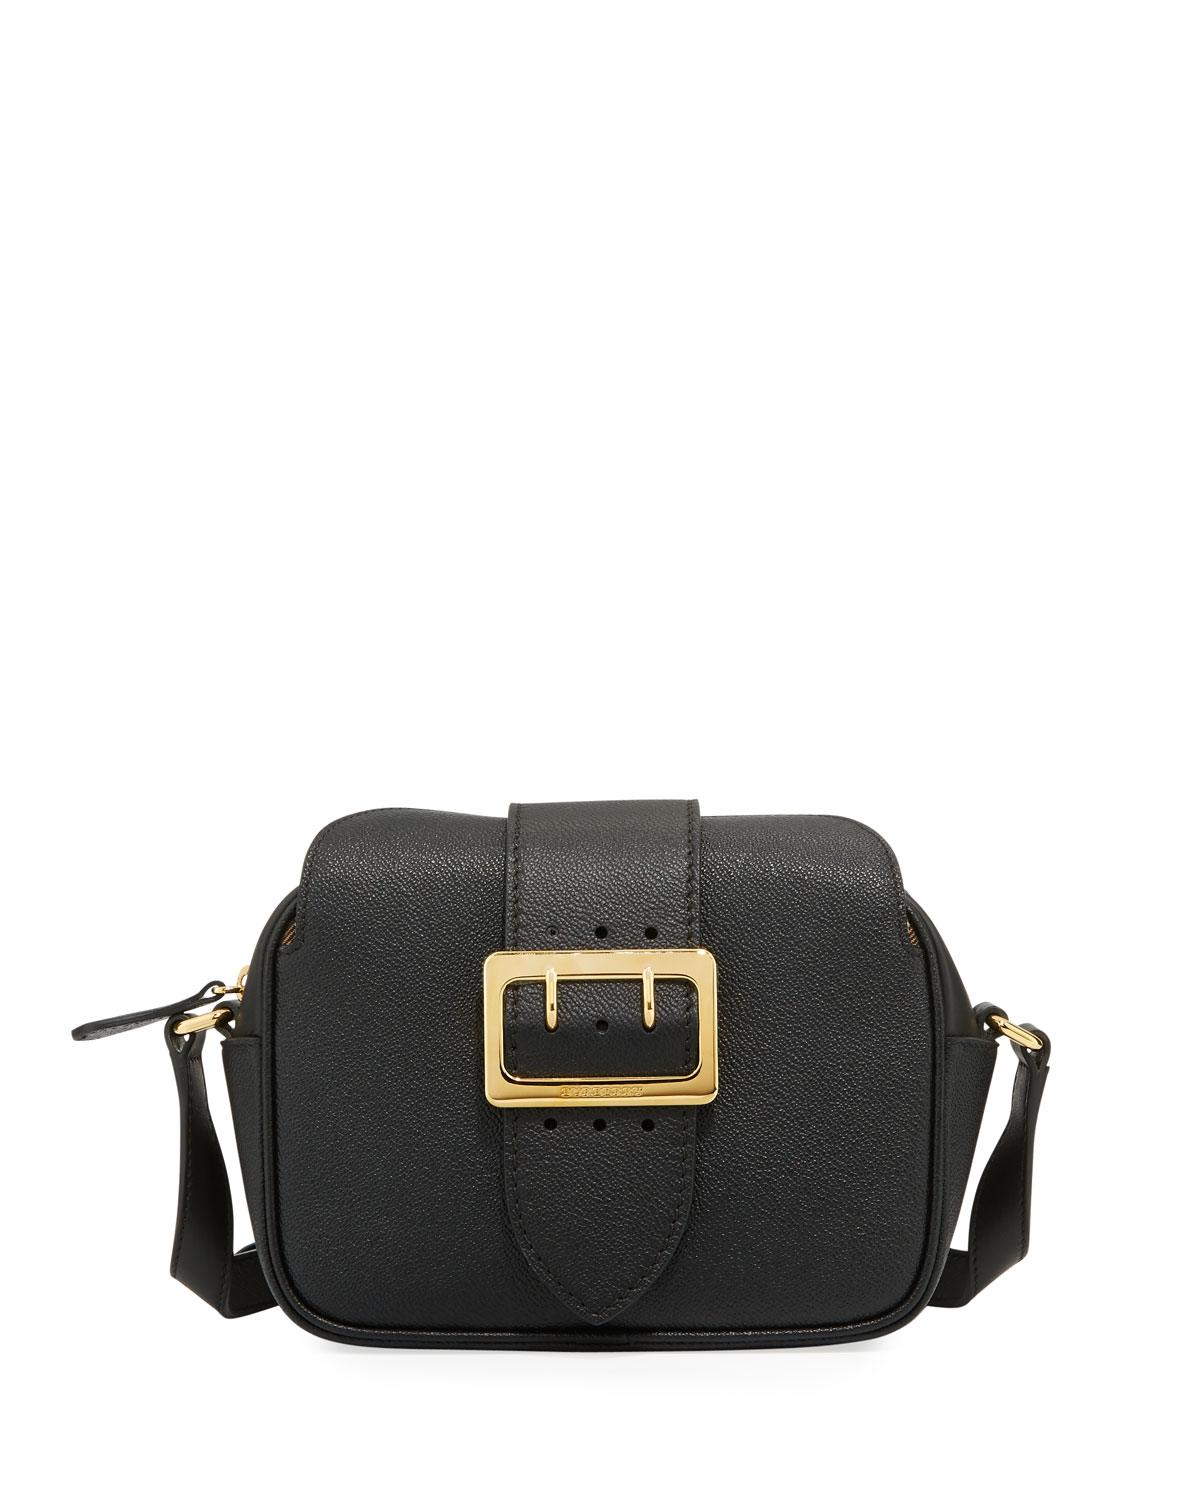 4680713af62 Burberry Small Soft Grain Leather Buckle Crossbody Bag, Black ...